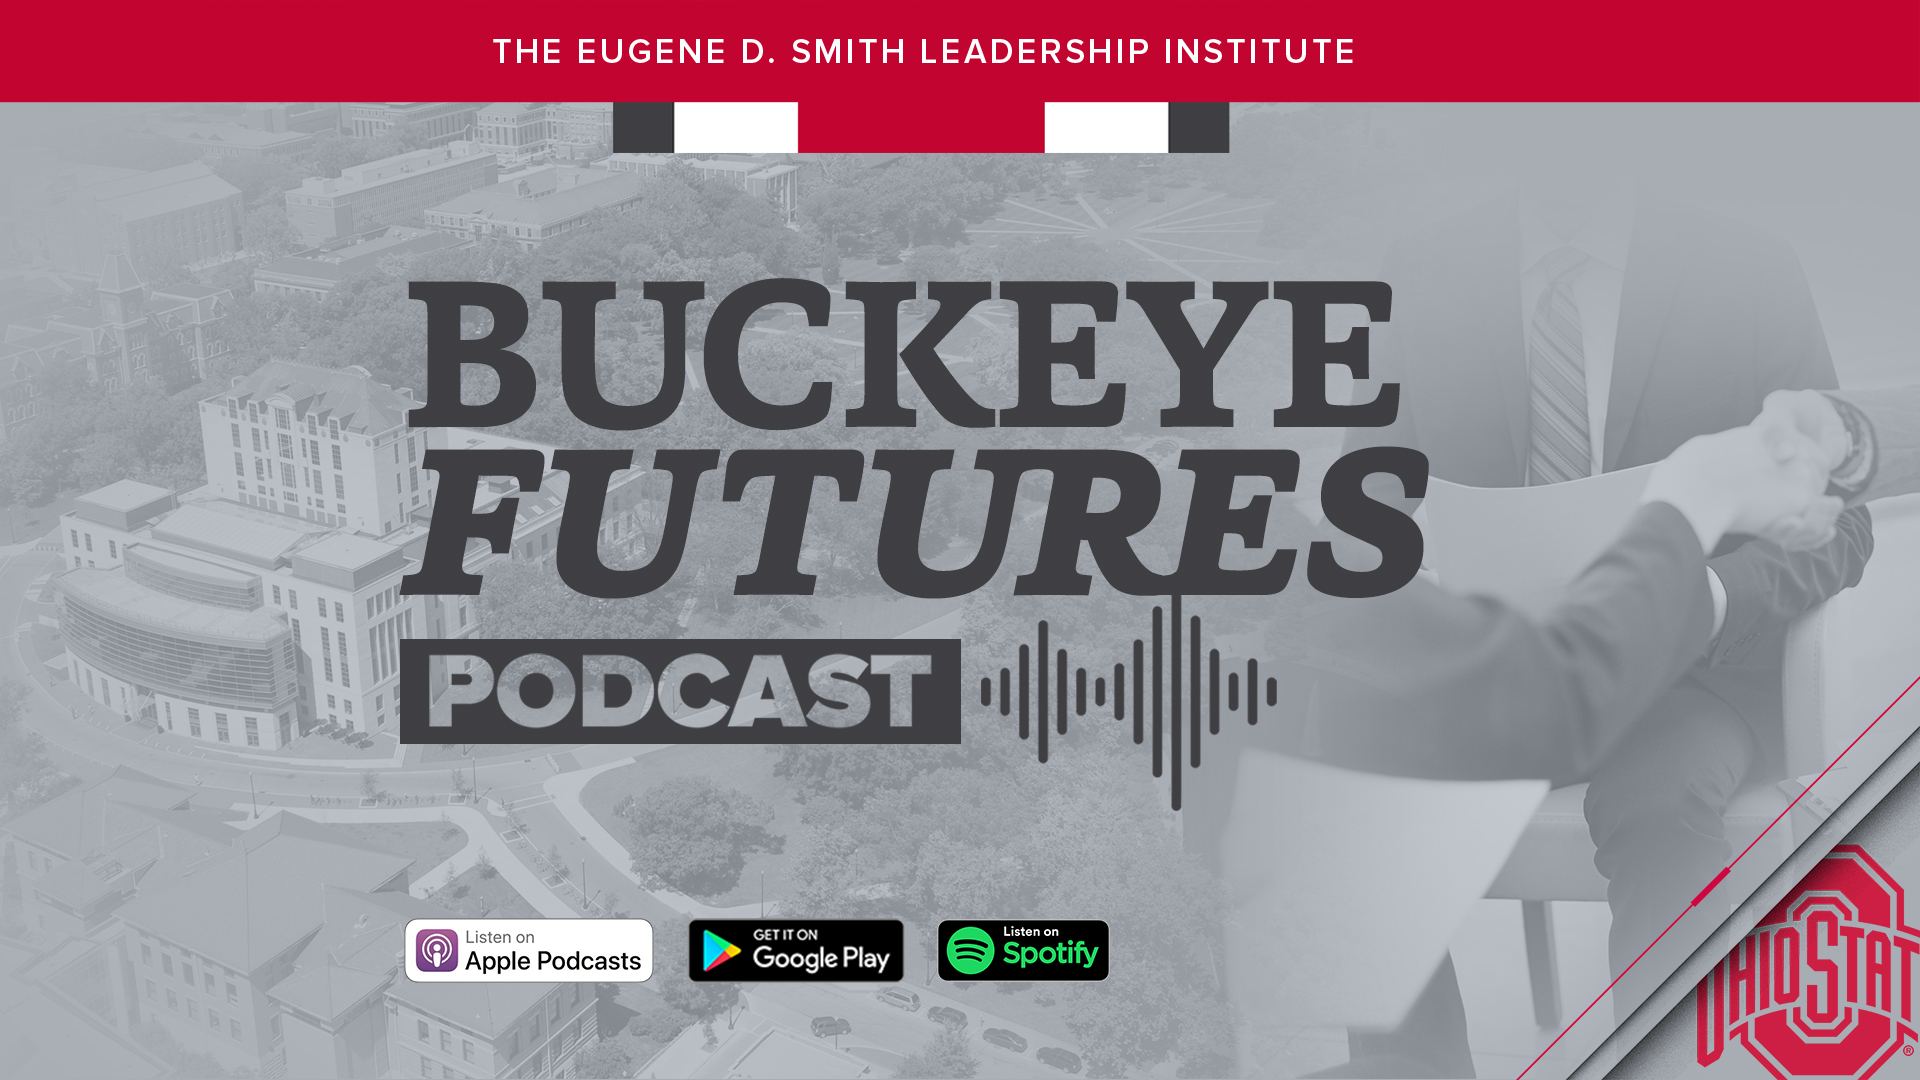 Buckeye Futures Podcast